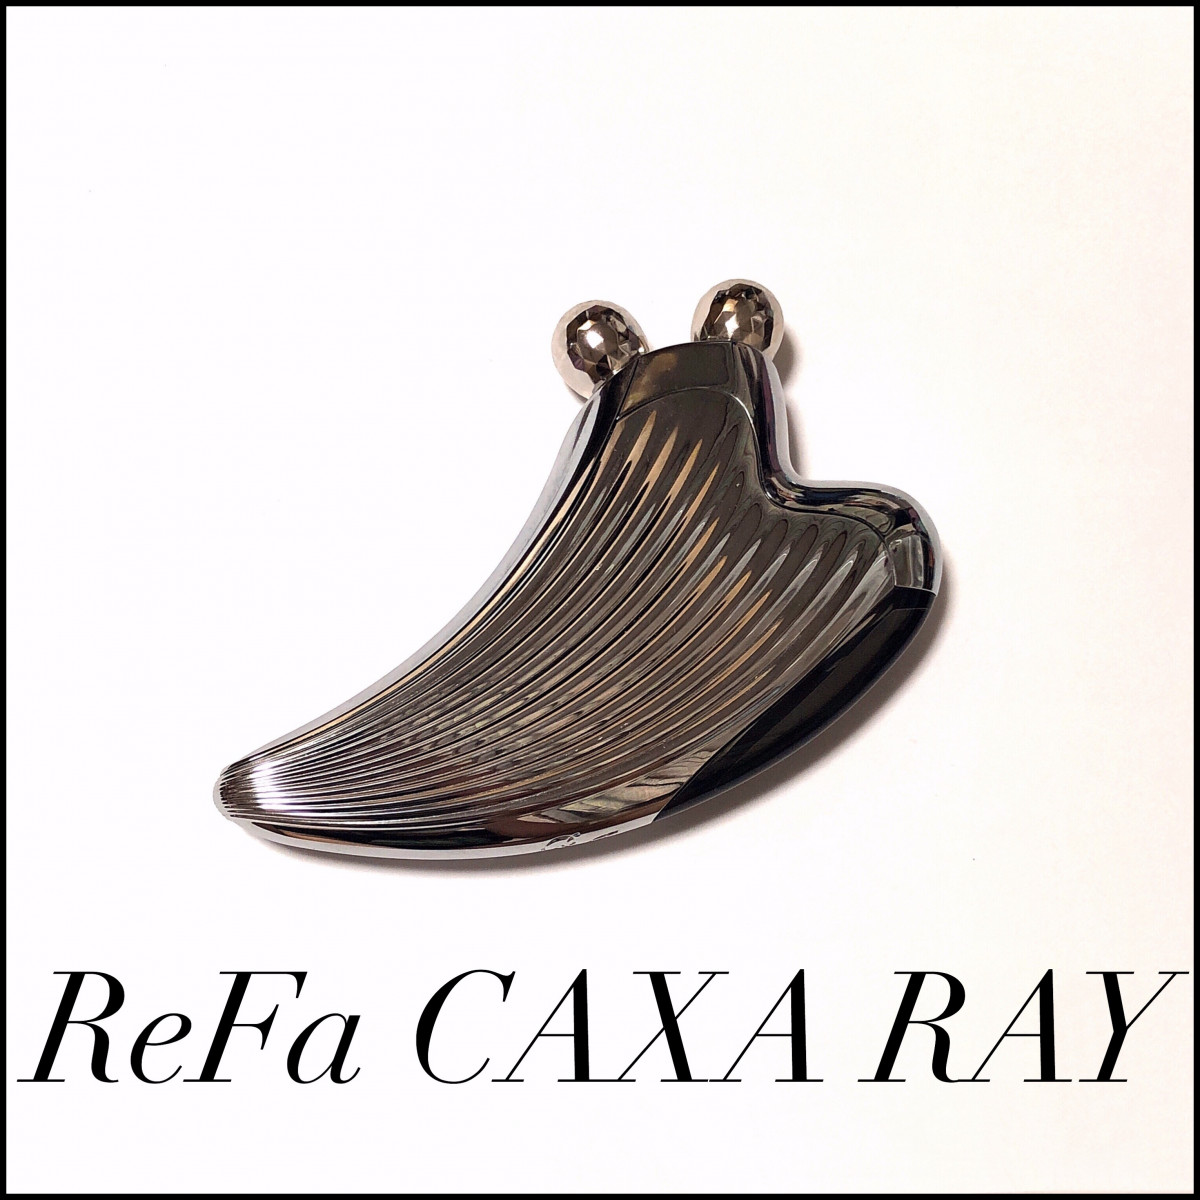 ReFaCAXARAY